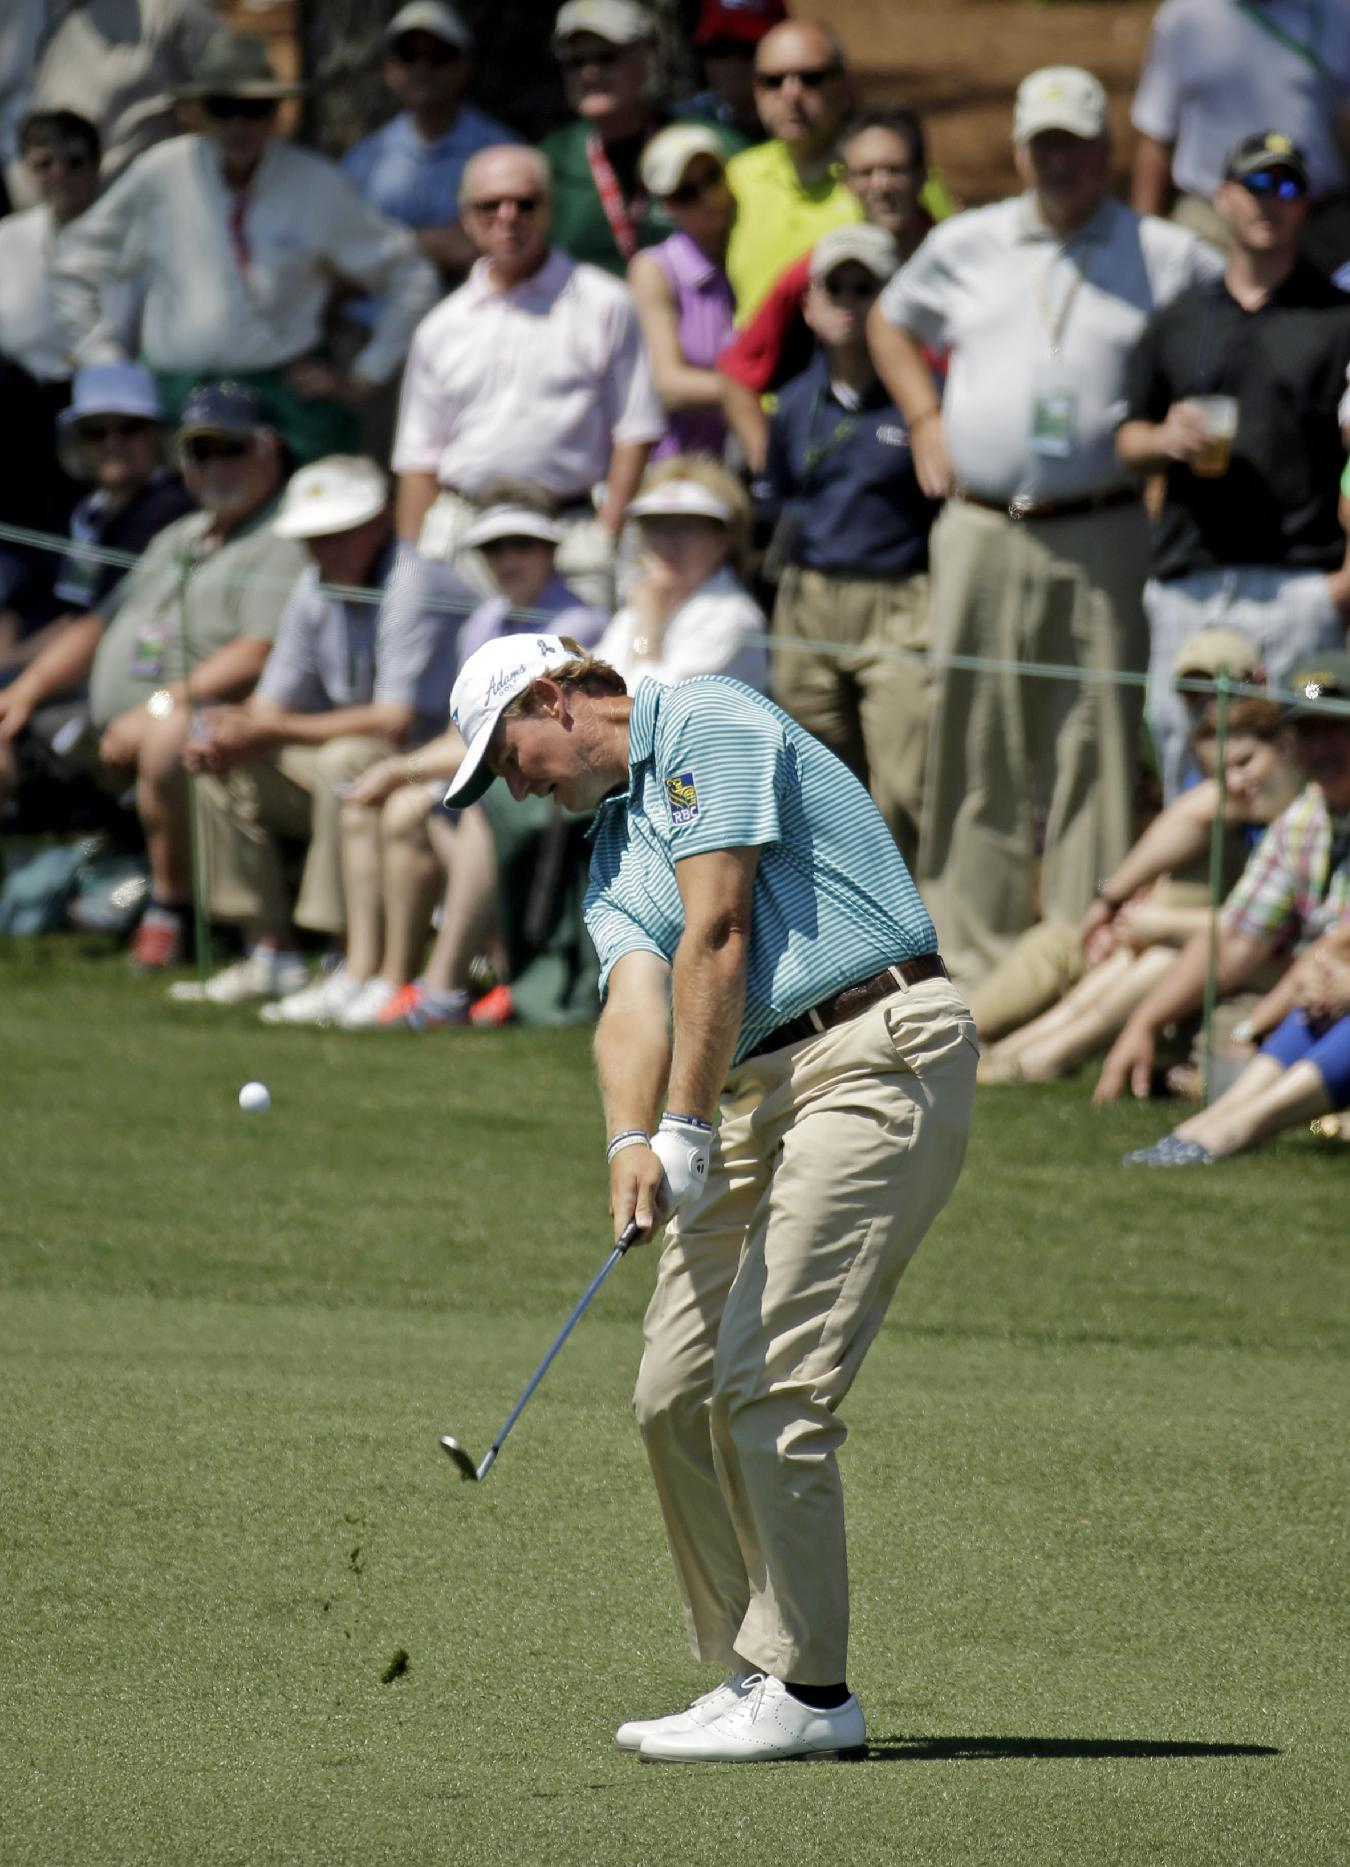 Ernie Els, of South Africa, hits to the second green during the first round of the Masters golf tournament Thursday, April 10, 2014, in Augusta, Ga